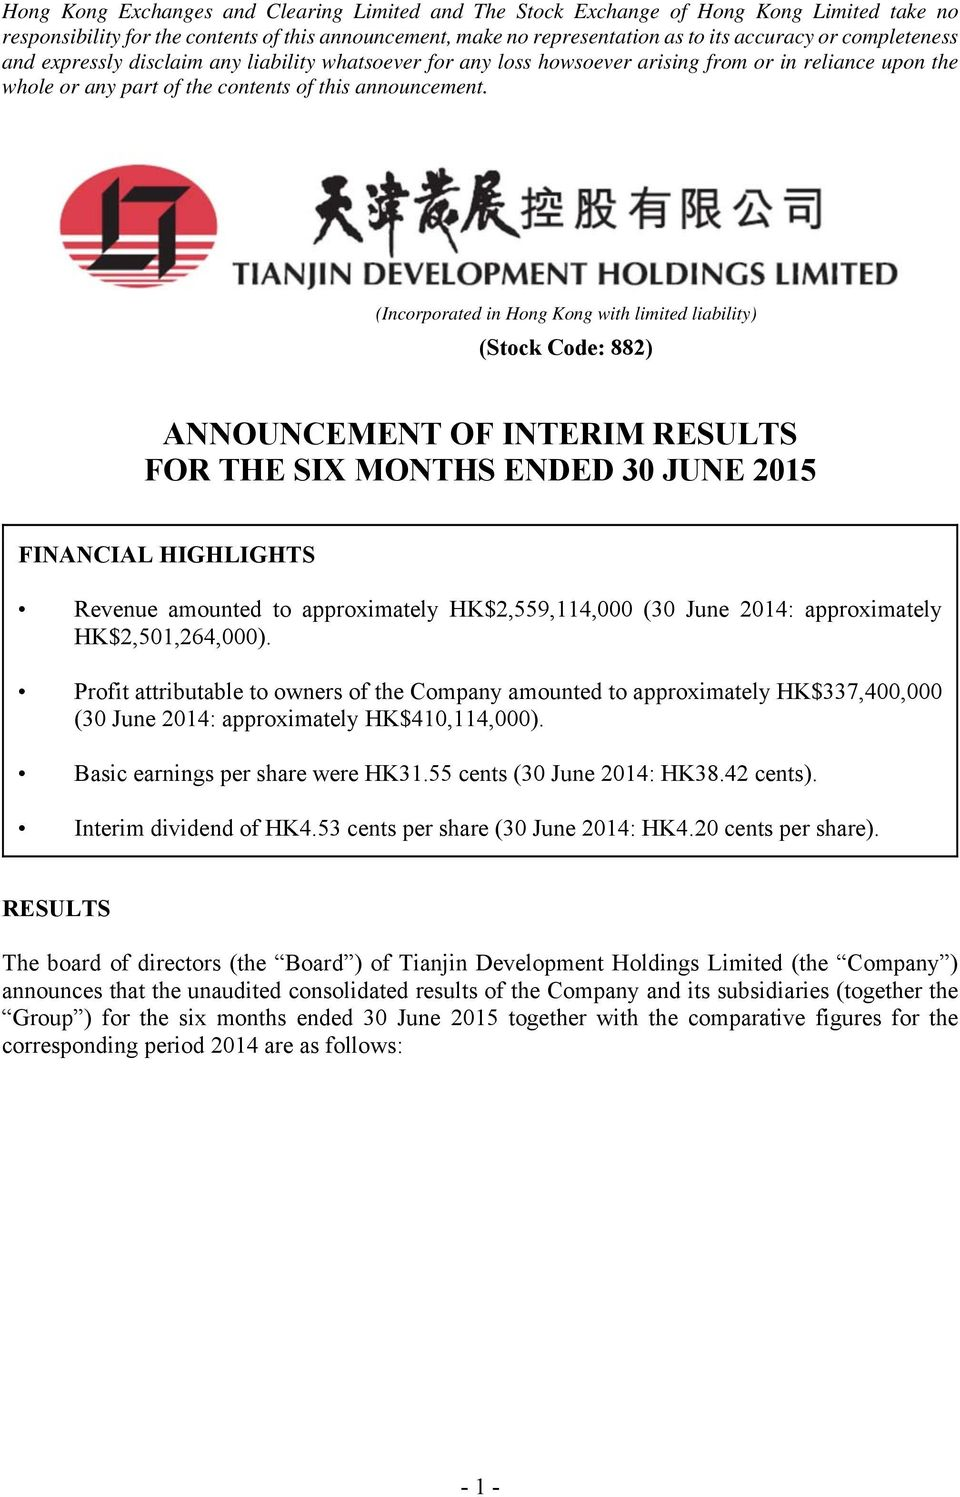 (Incorporated in Hong Kong with limited liability) (Stock Code: 882) ANNOUNCEMENT OF INTERIM RESULTS FOR THE SIX MONTHS ENDED 30 JUNE 2015 FINANCIAL HIGHLIGHTS Revenue amounted to approximately